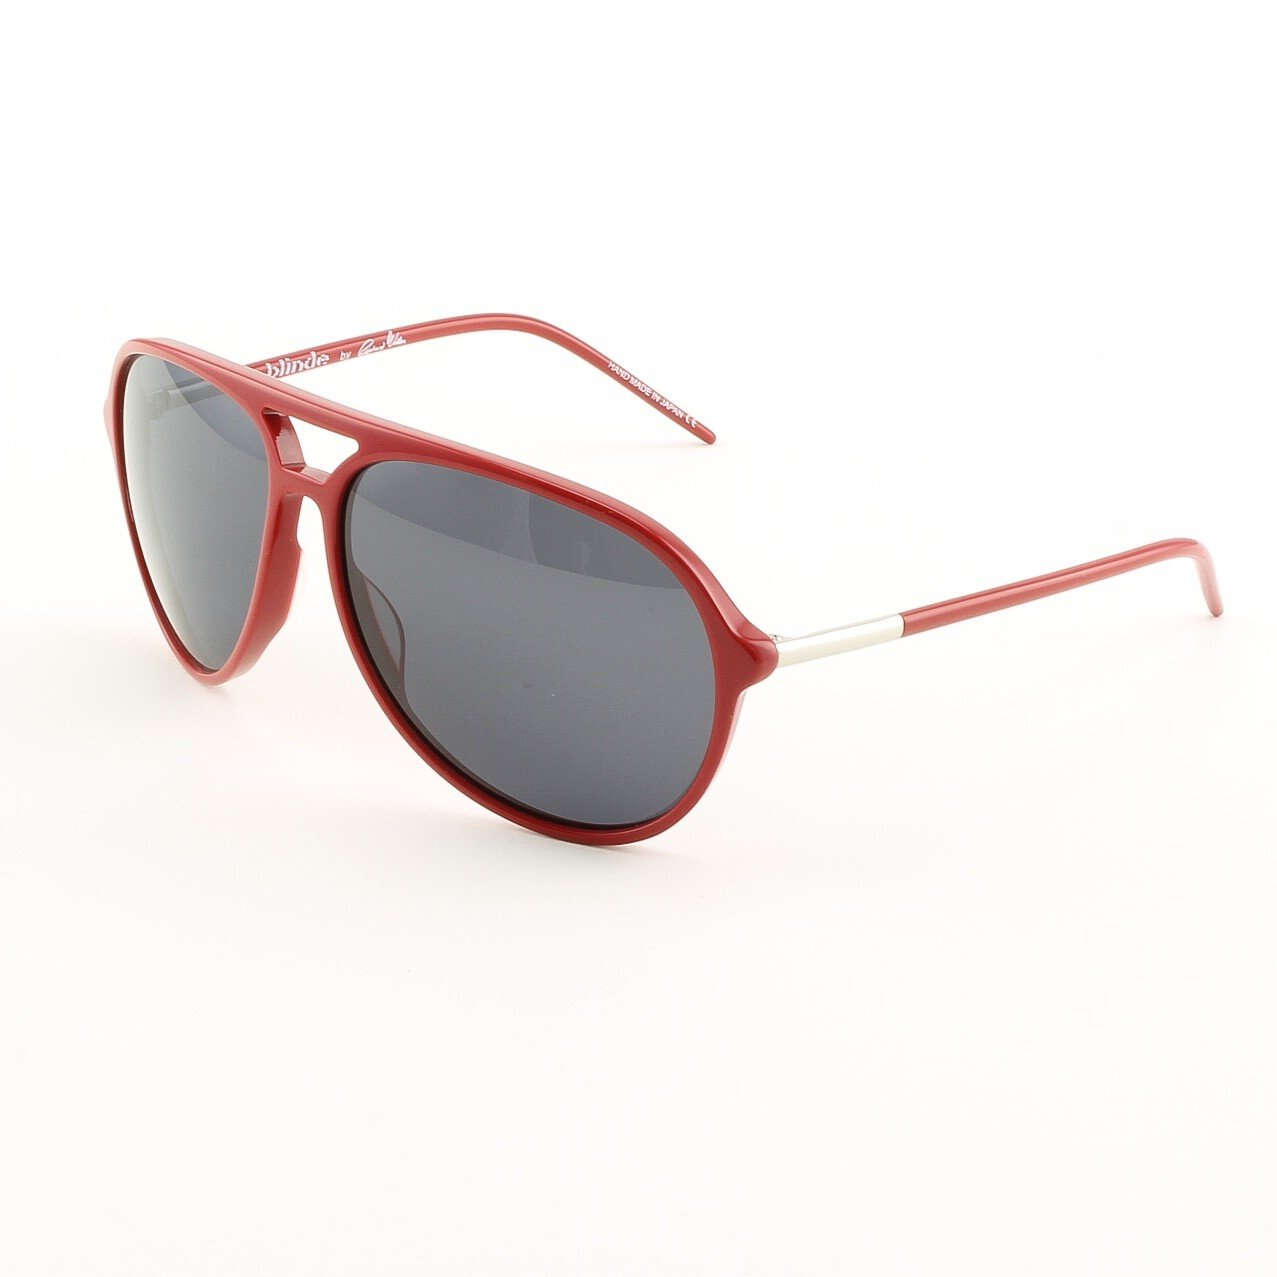 Blinde Joy Rides Men's Sunglasses Col. Red with Grey Lenses